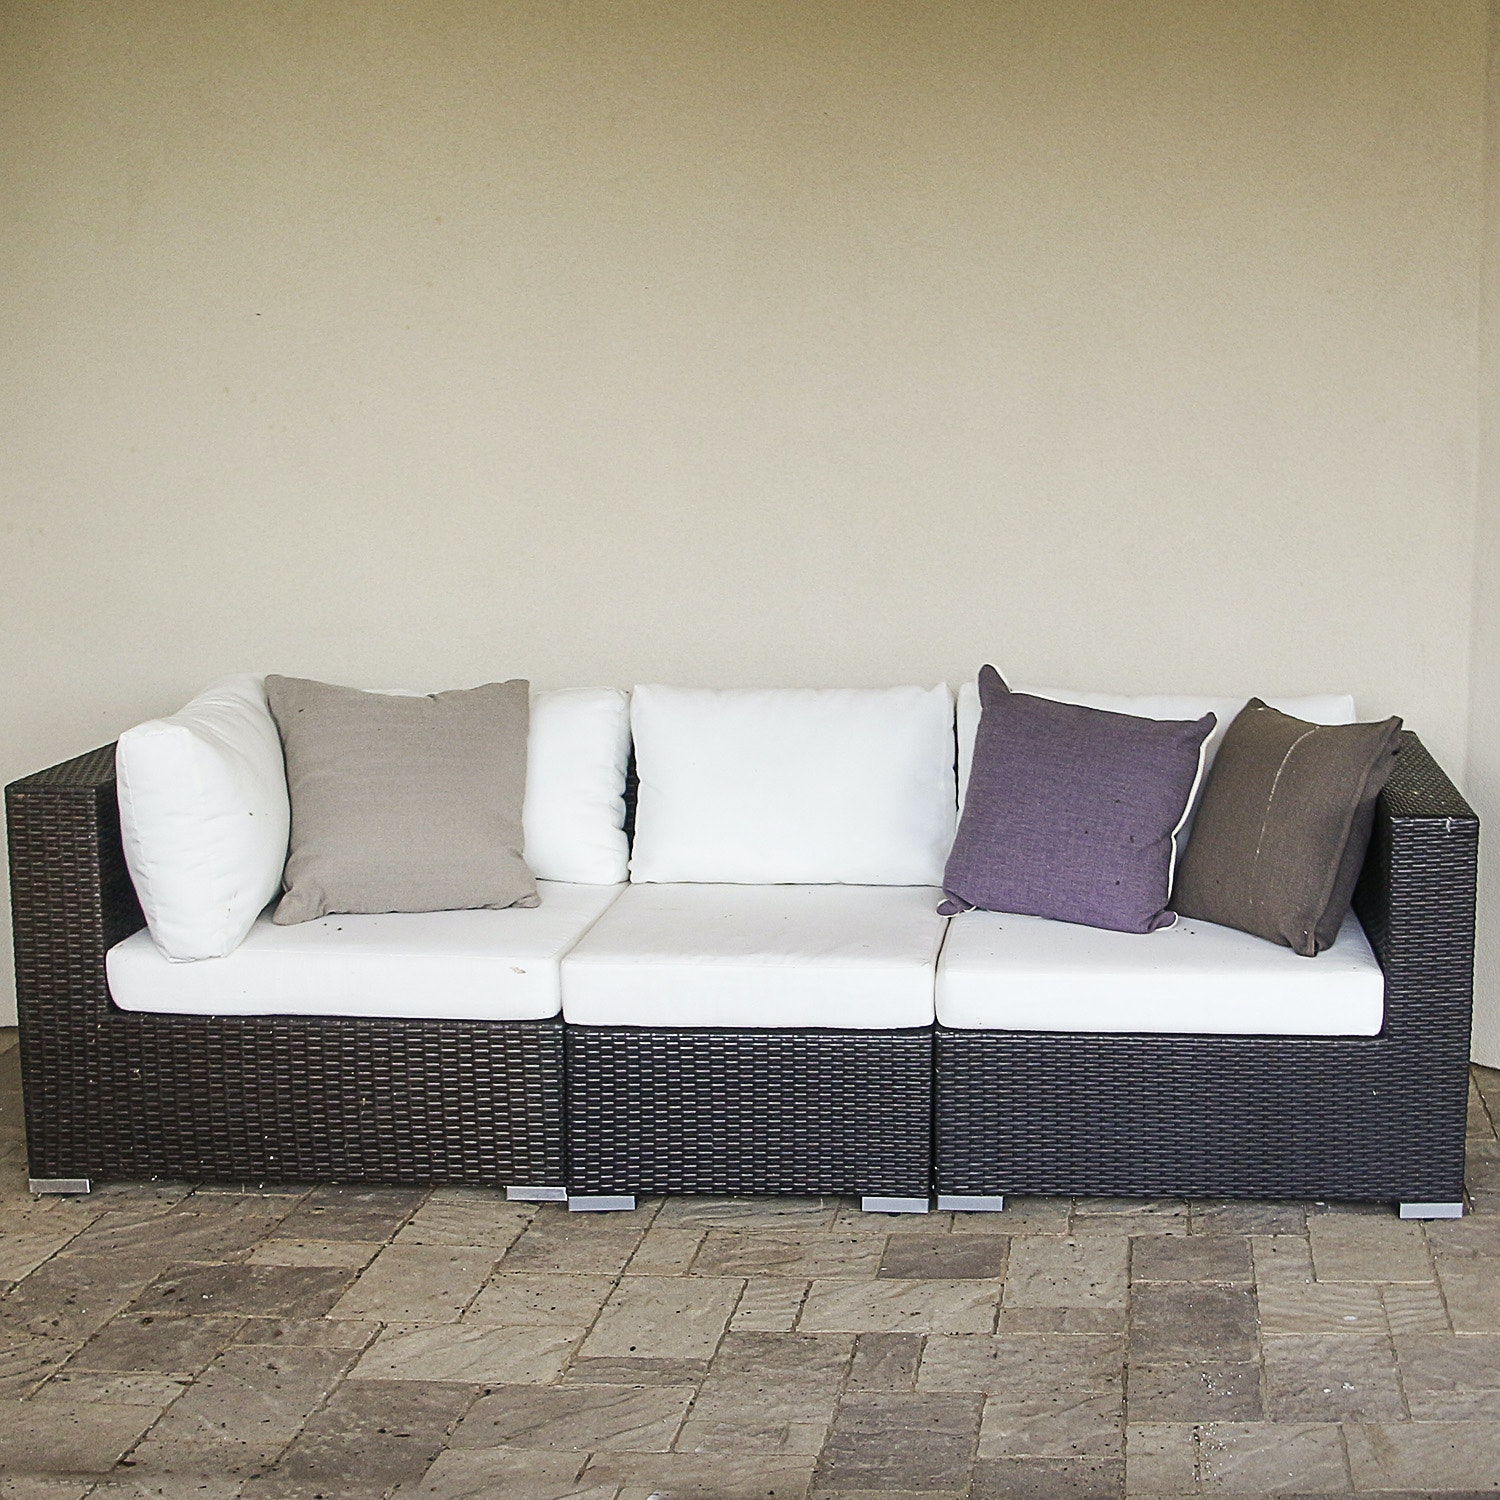 Brown Faux Wicker Sectional with White Upholstered Cushions